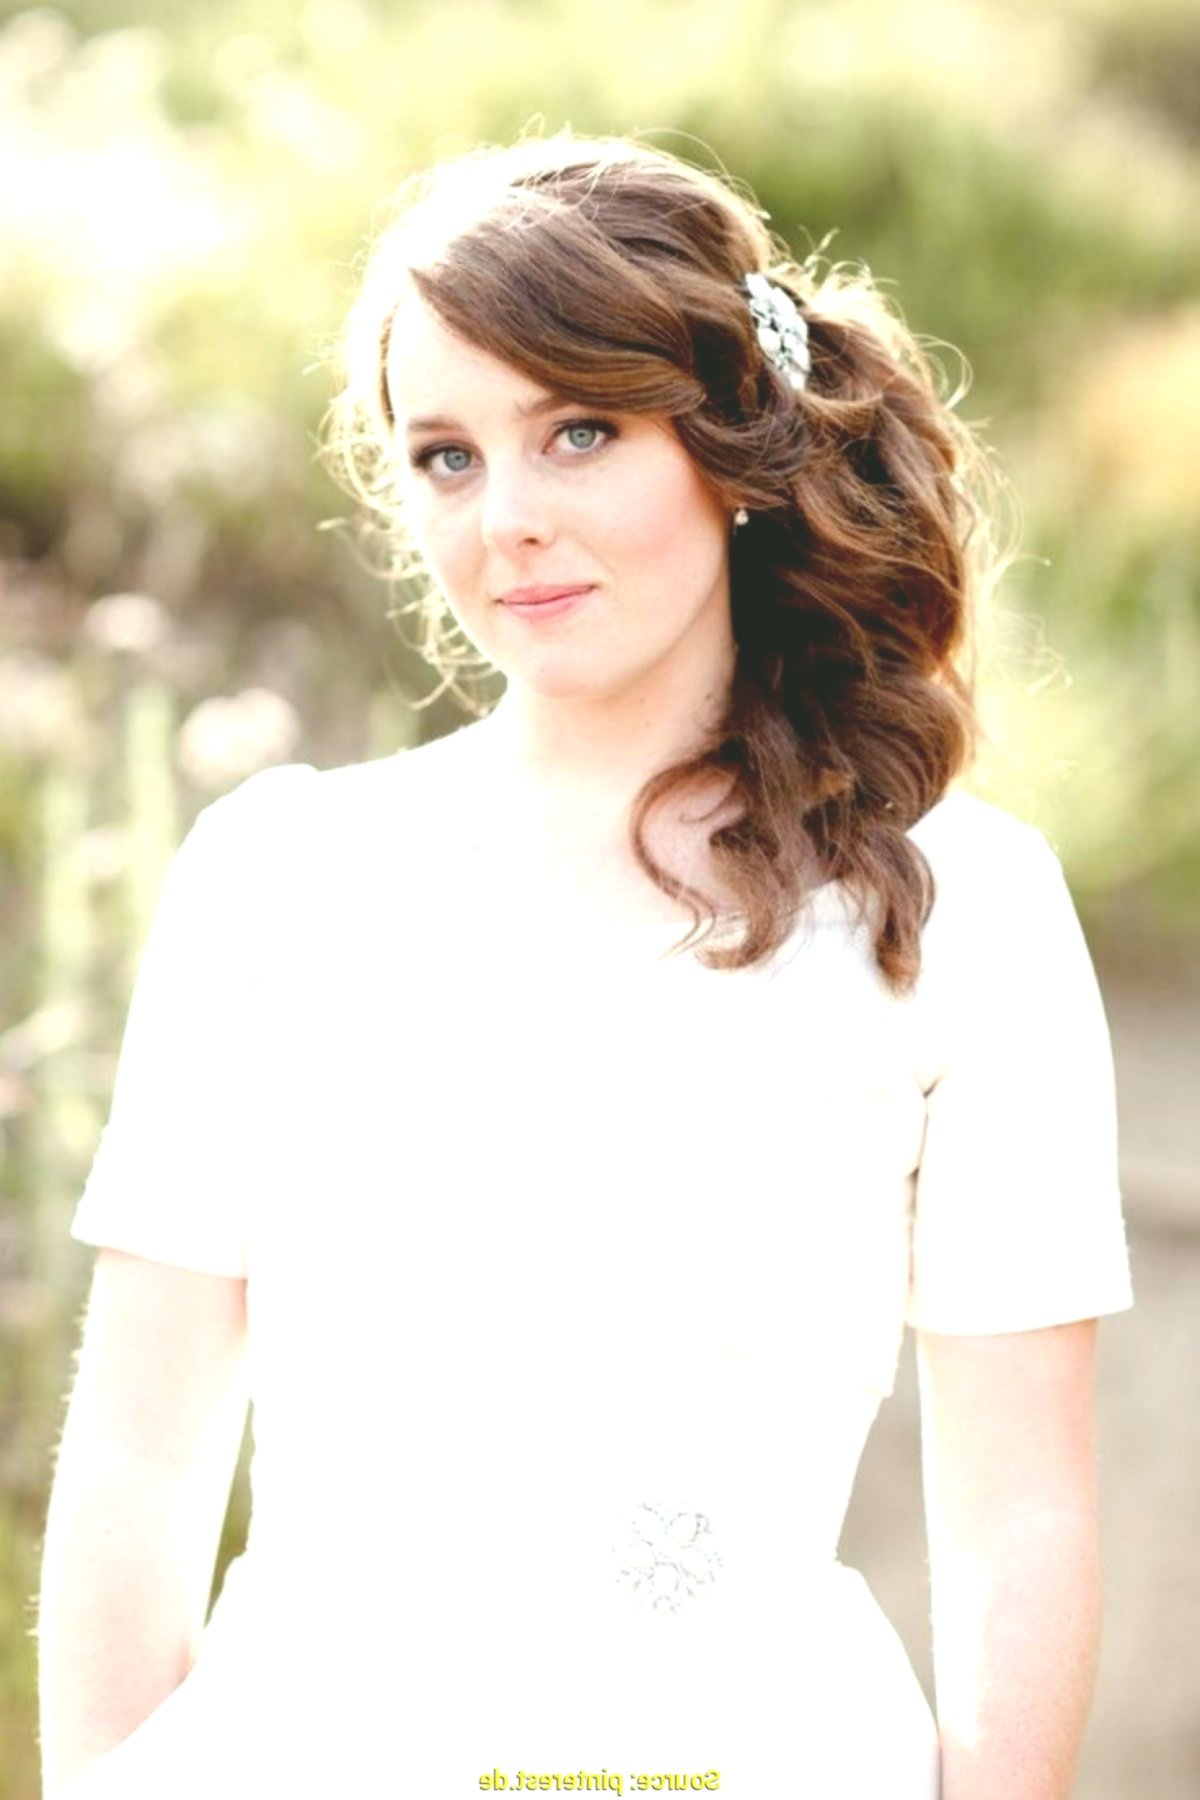 terribly cool hairstyles half length curls image-Best Of Hairstyles Half Length Curls Collection